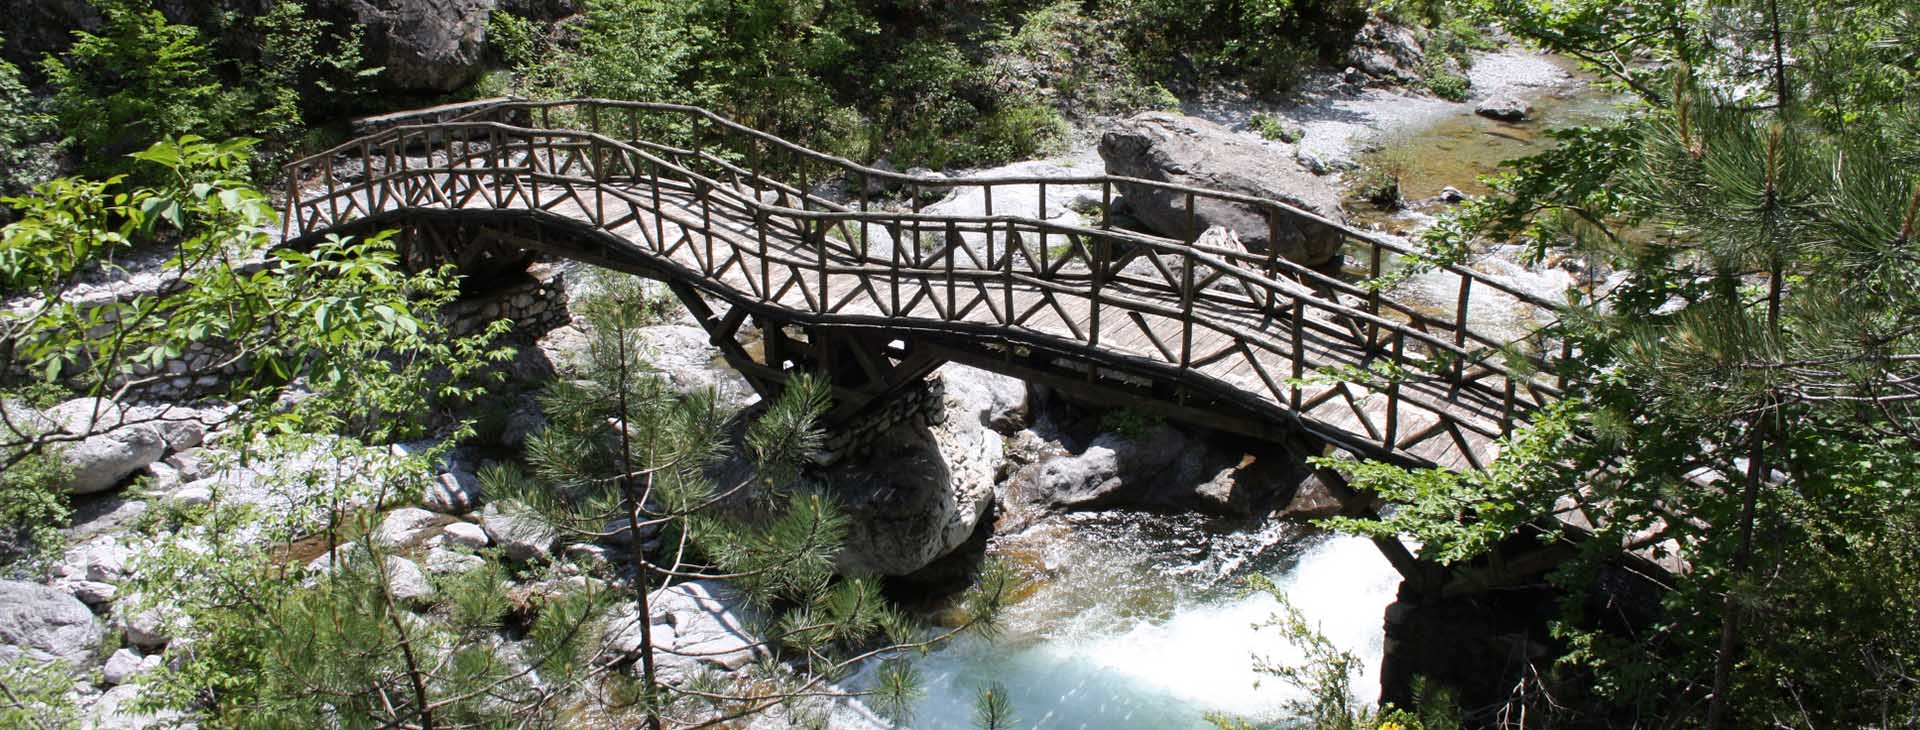 Bridge on Enipeas Gorge, Mt. Olympus, Pieria